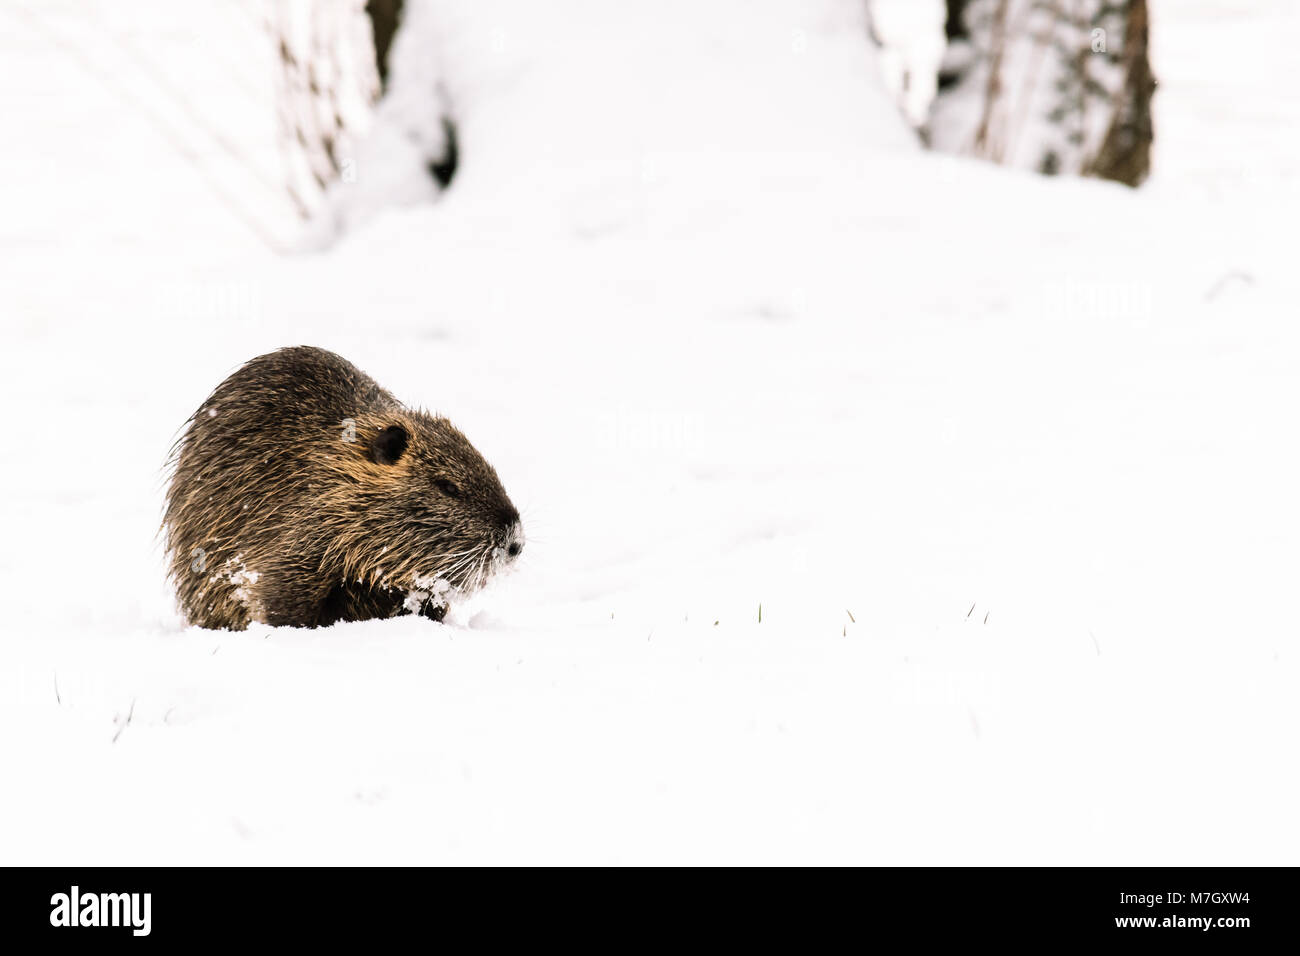 Wild coypu in the nature on the snow. Winter, cold weather, snow and frost. Also known as myocastor coypus or nutria. Stock Photo